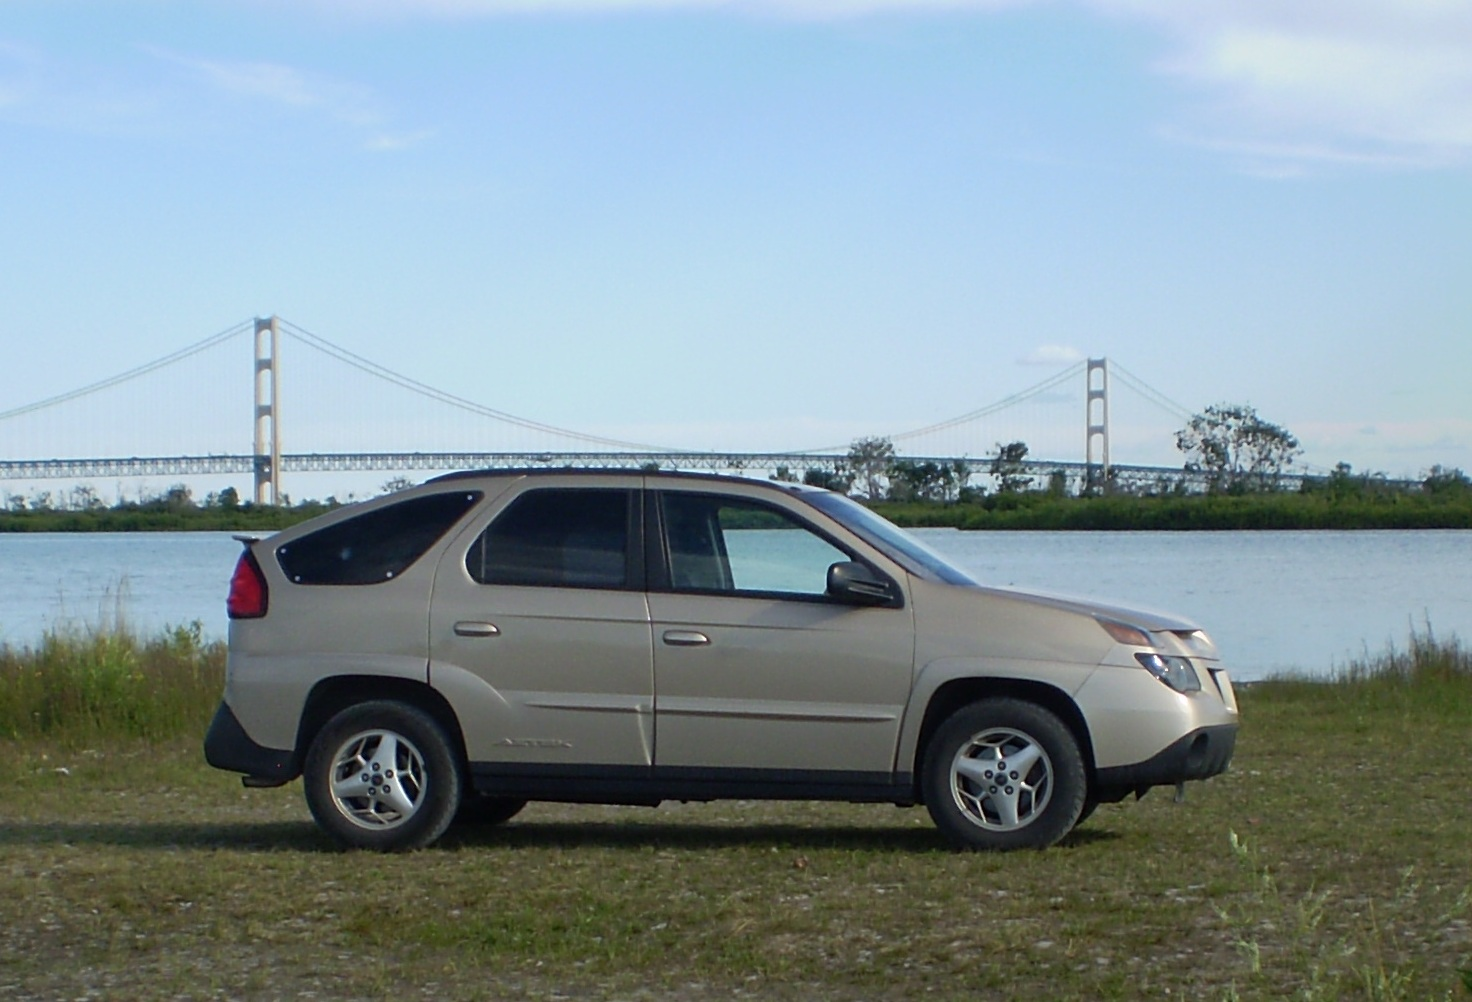 Compare Suvs Pontiac Aztec Vs Ford Escape Writework